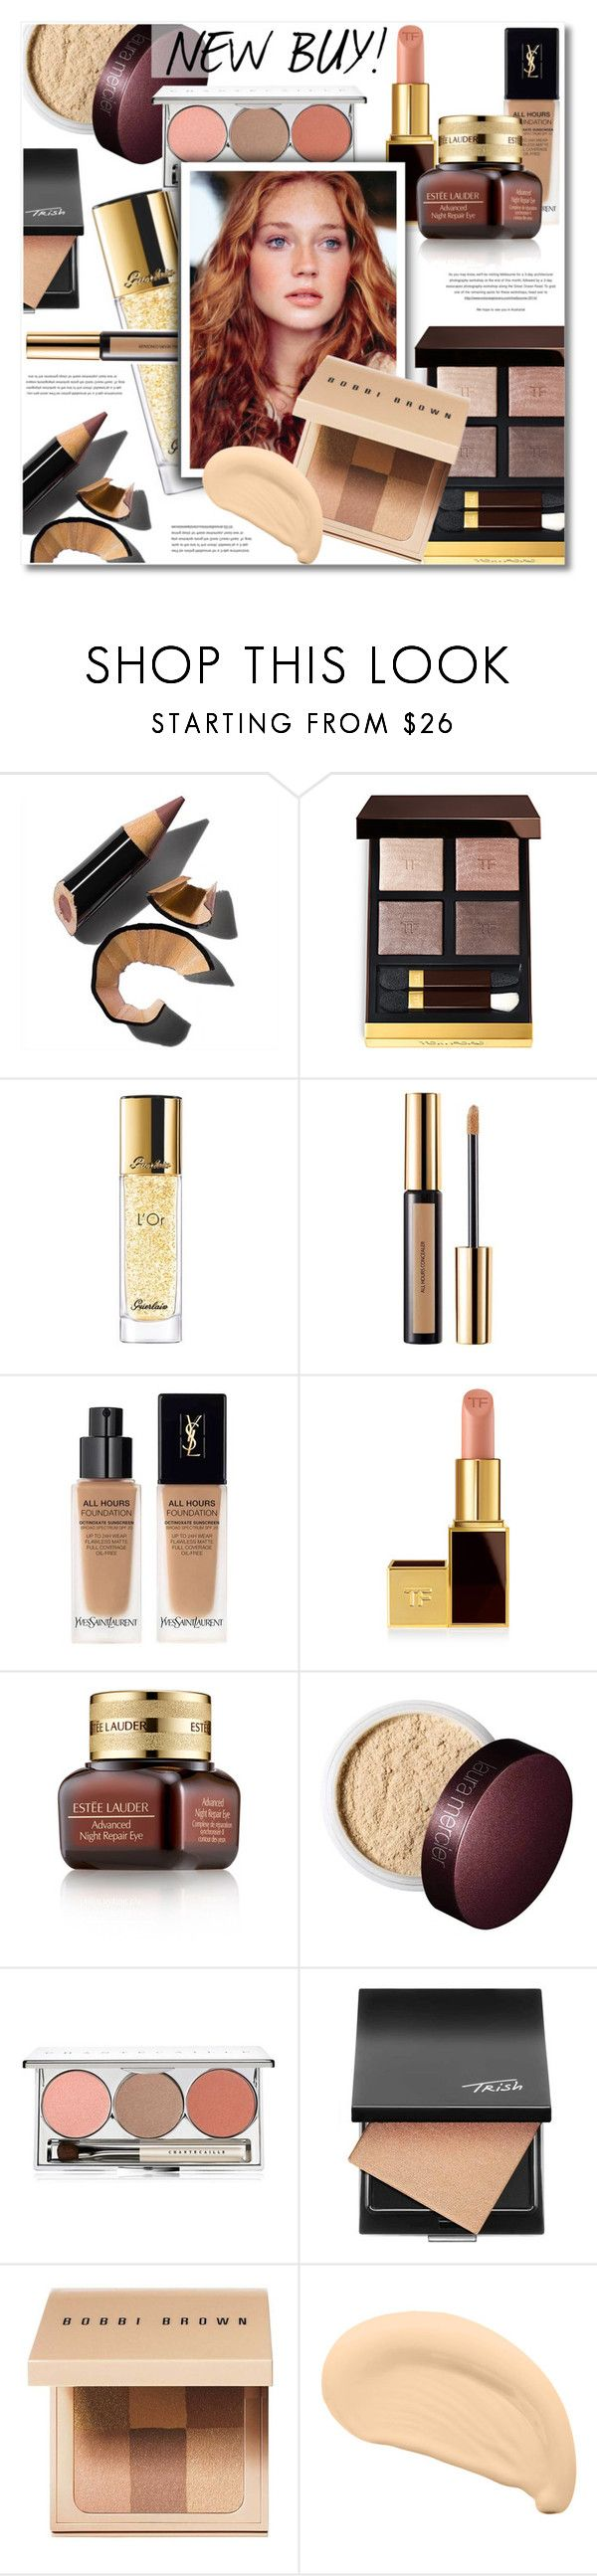 """""""MAKE UP LOVERS!"""" by defivirda ❤ liked on Polyvore featuring beauty, Bobbi Brown Cosmetics, Tom Ford, Guerlain, Yves Saint Laurent, Estée Lauder, Laura Mercier, Chantecaille and Trish McEvoy"""